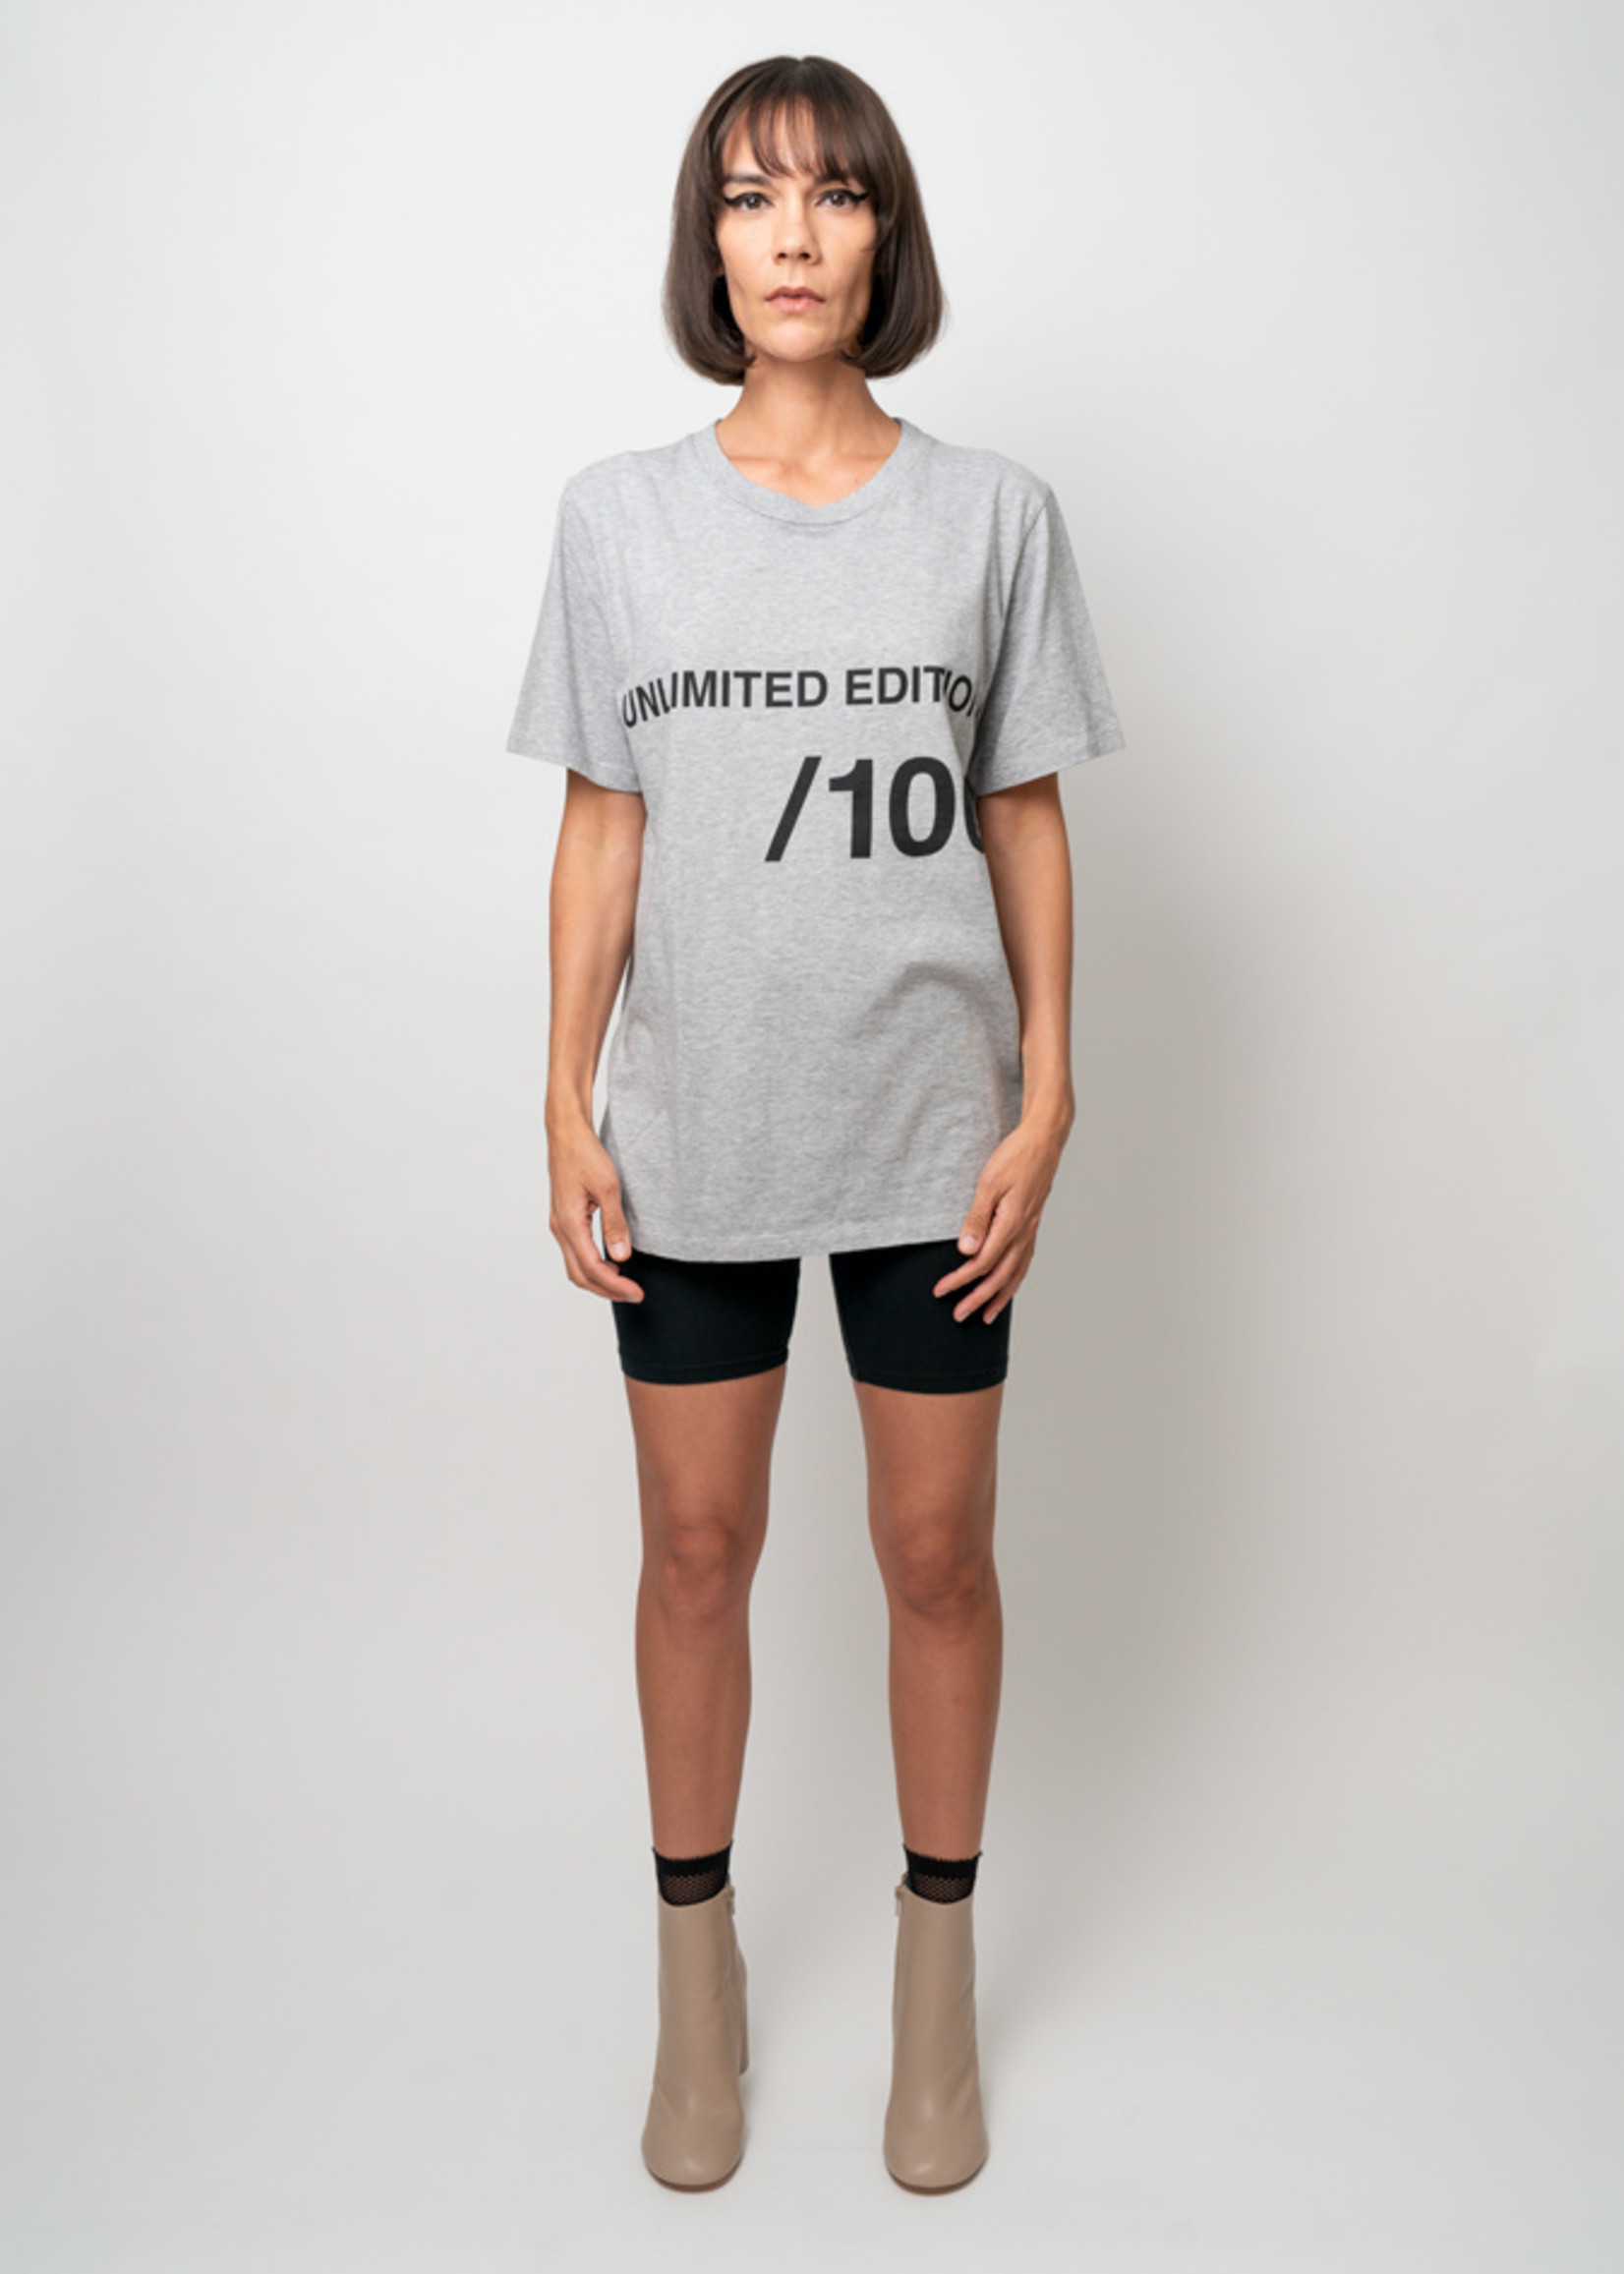 MM6 MAISON MARGIELA Unlimited Edition Tee: Grey Heather